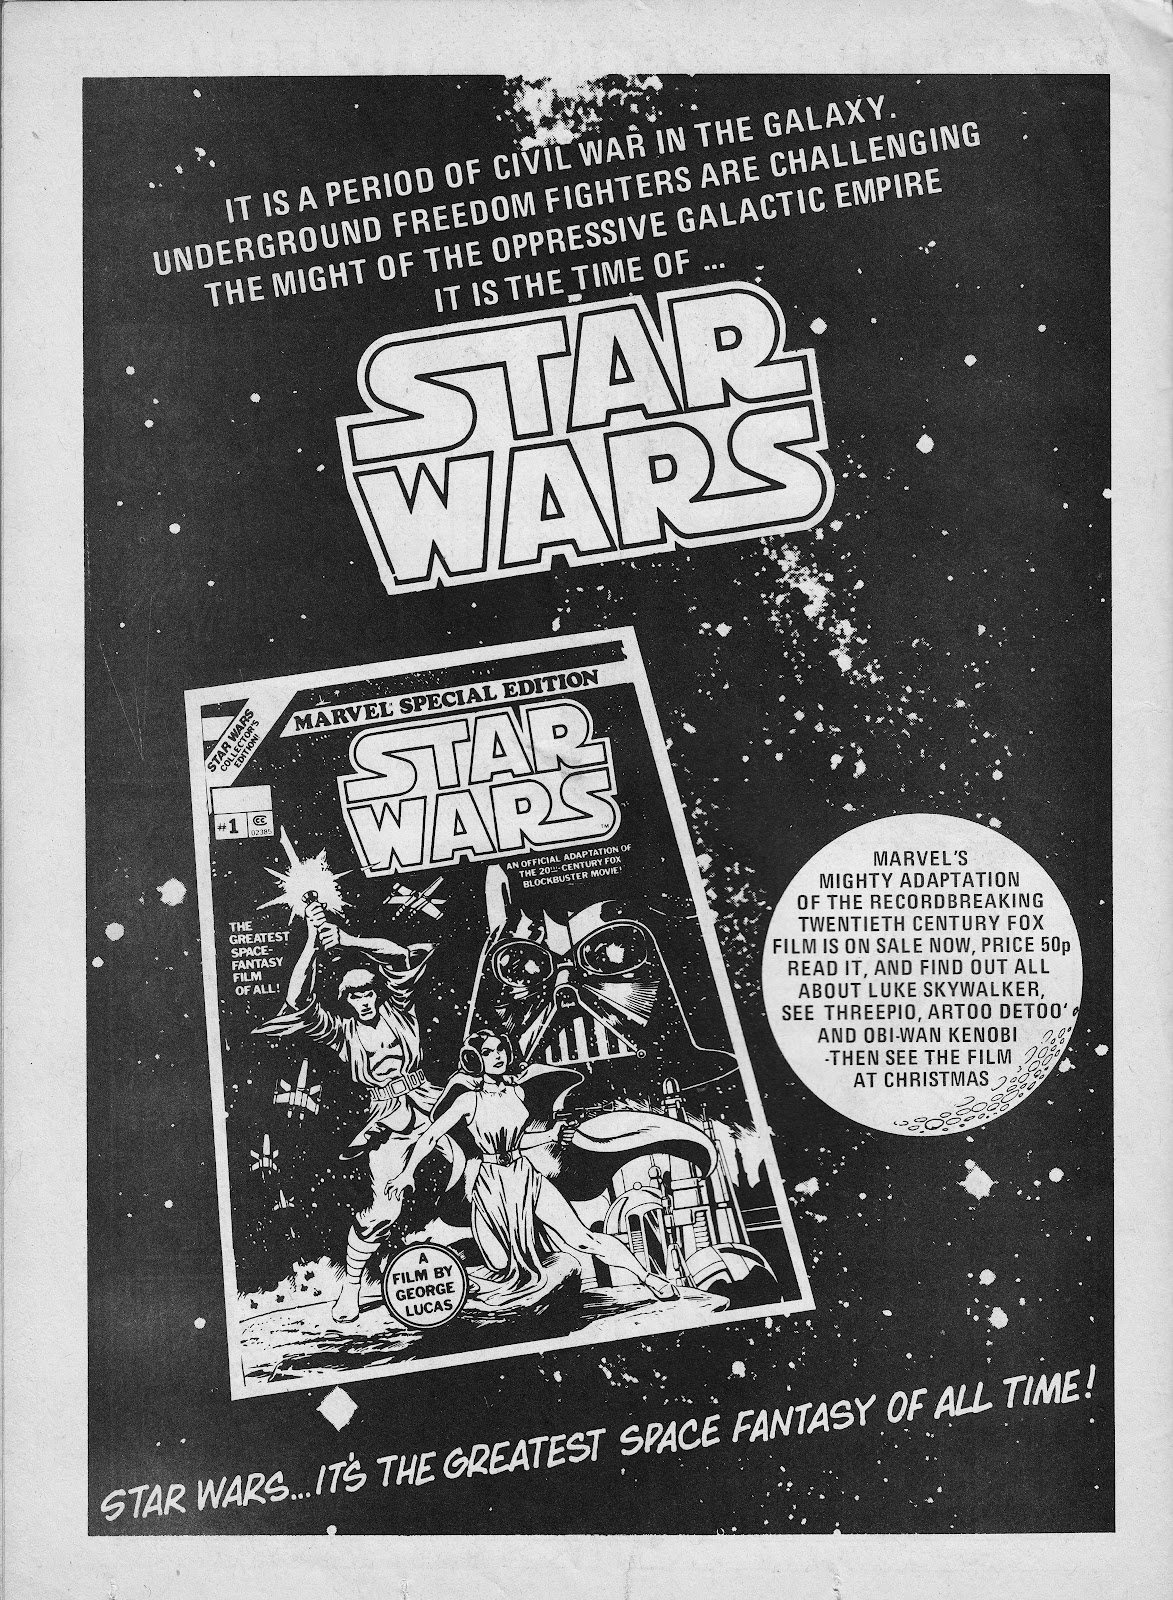 an advertisement for marvels star wars adaptation - Starwars Christmas